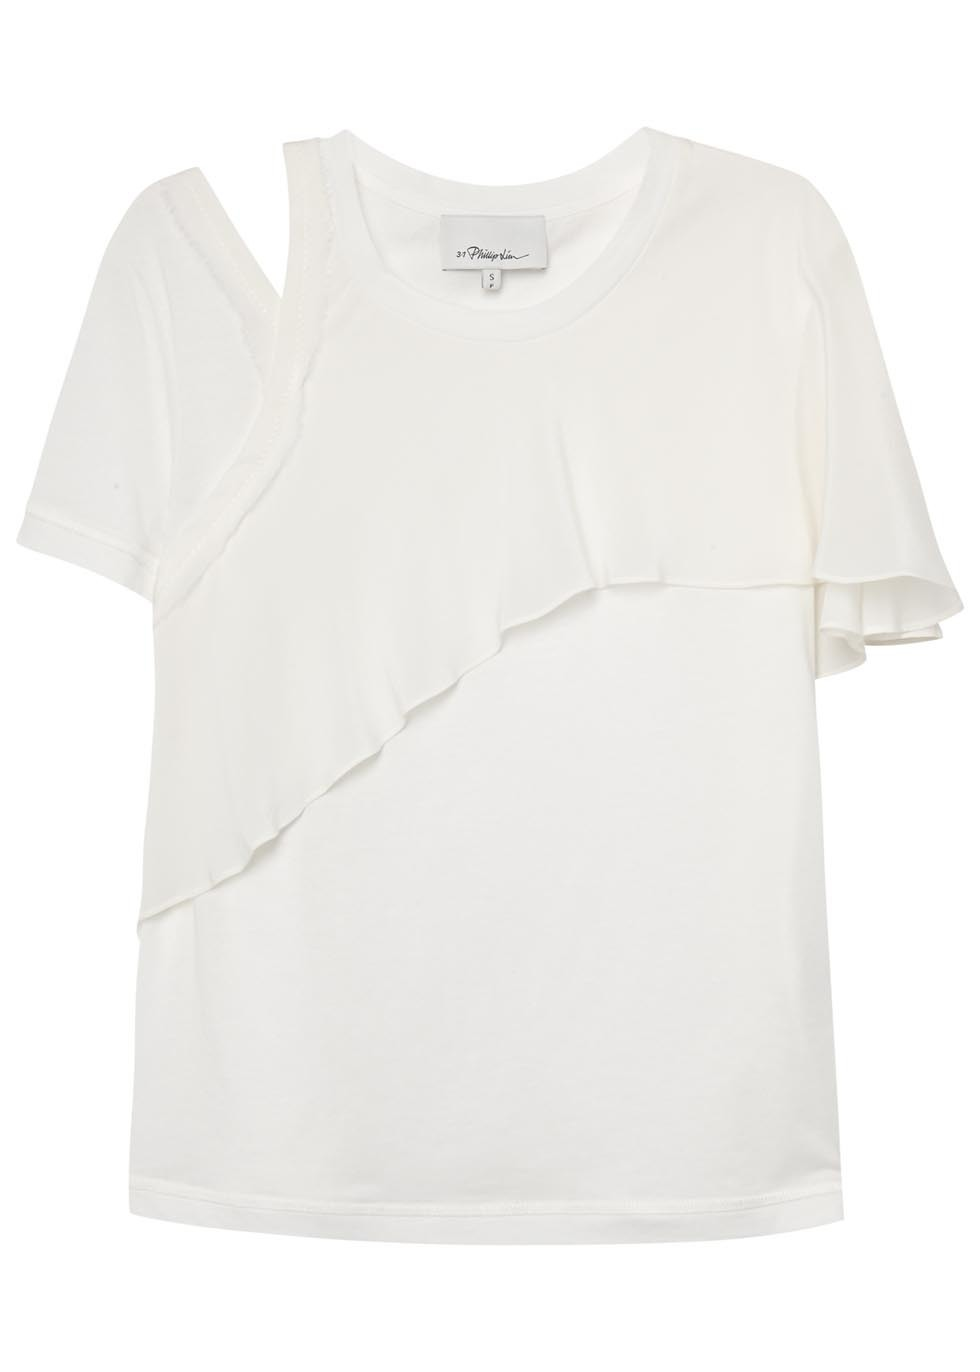 White Silk Flared Cotton T Shirt - pattern: plain; style: t-shirt; bust detail: subtle bust detail; predominant colour: white; occasions: evening; length: standard; fibres: cotton - 100%; fit: body skimming; neckline: crew; shoulder detail: cut out shoulder; sleeve length: short sleeve; sleeve style: standard; pattern type: fabric; texture group: jersey - stretchy/drapey; season: s/s 2016; wardrobe: event